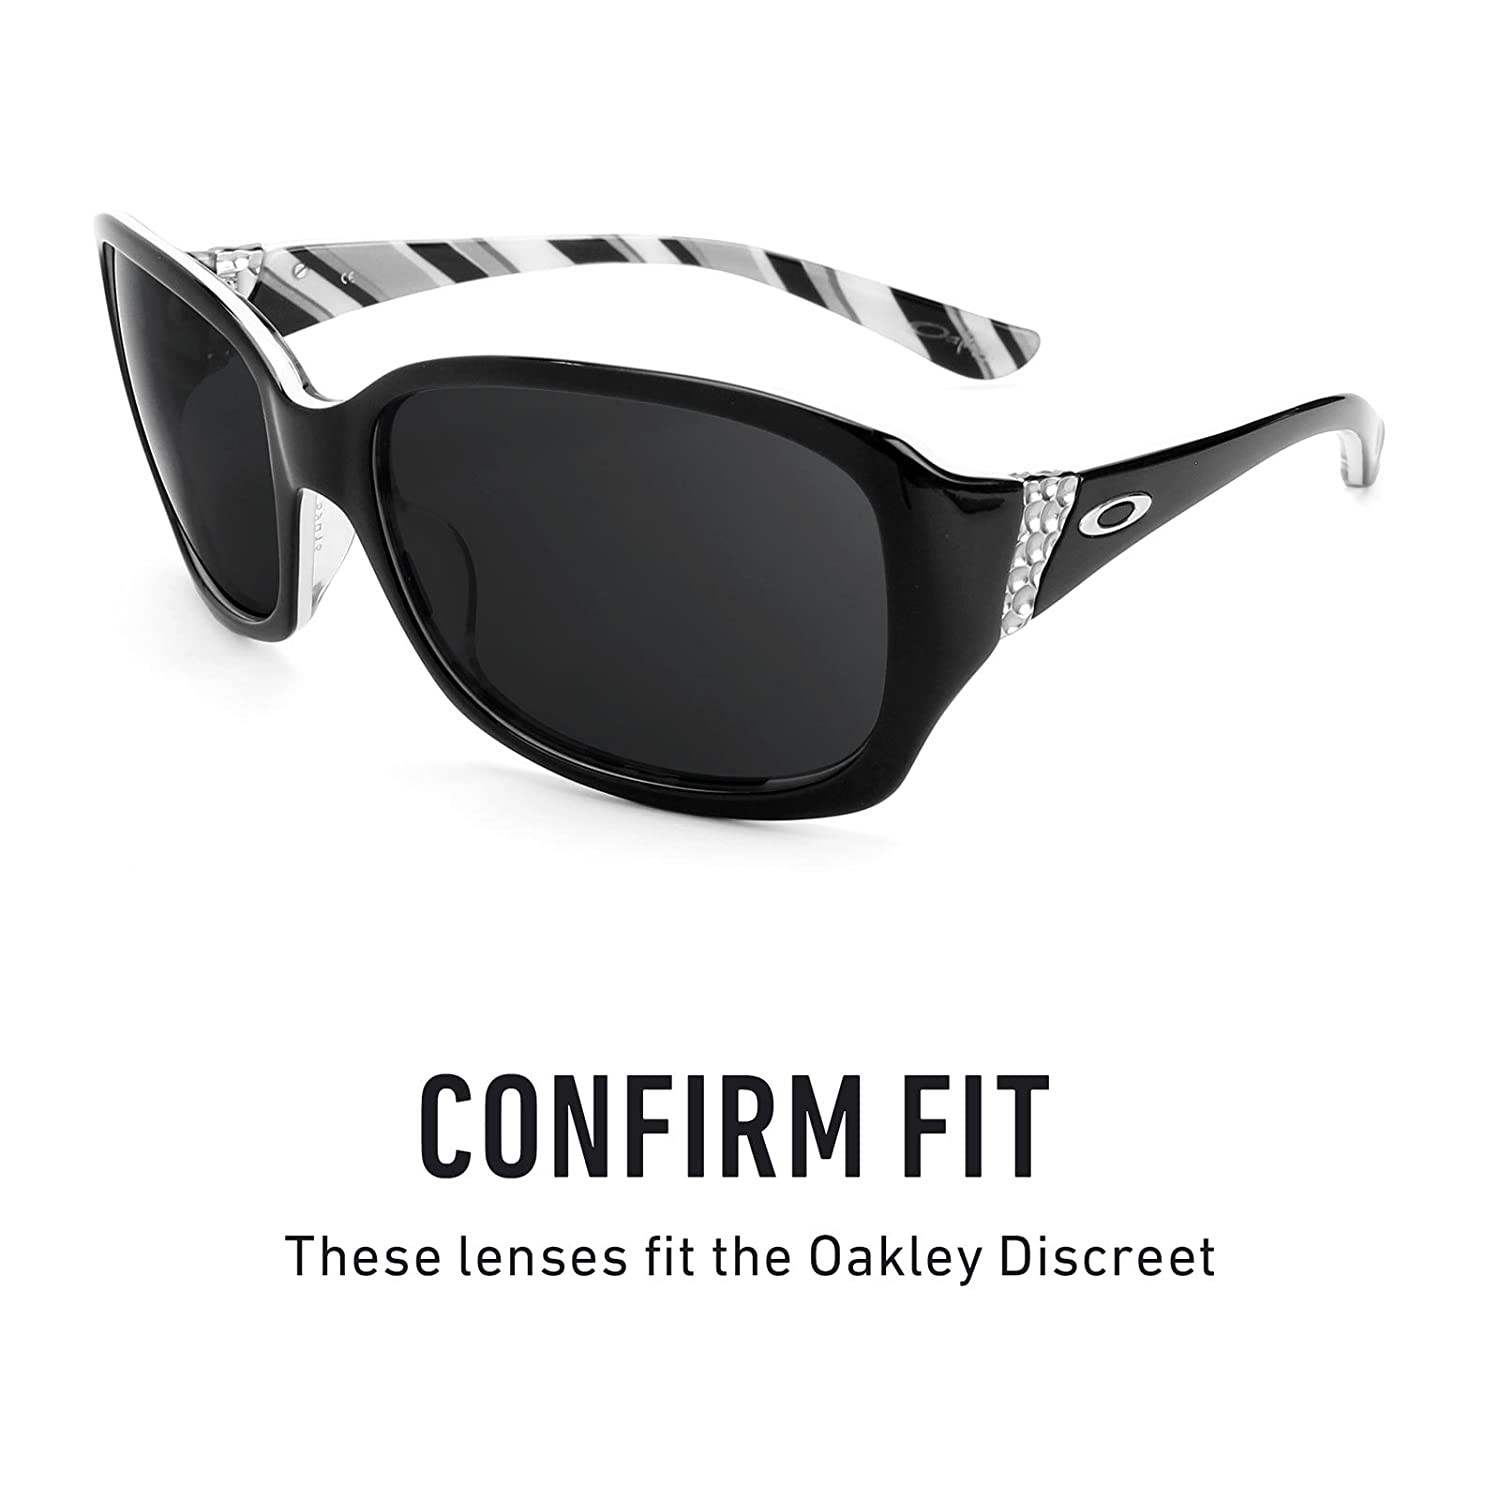 95a24da721 Revant Polarized Replacement Lenses for Oakley Discreet Elite Black Chrome  MirrorShield®  Amazon.co.uk  Clothing